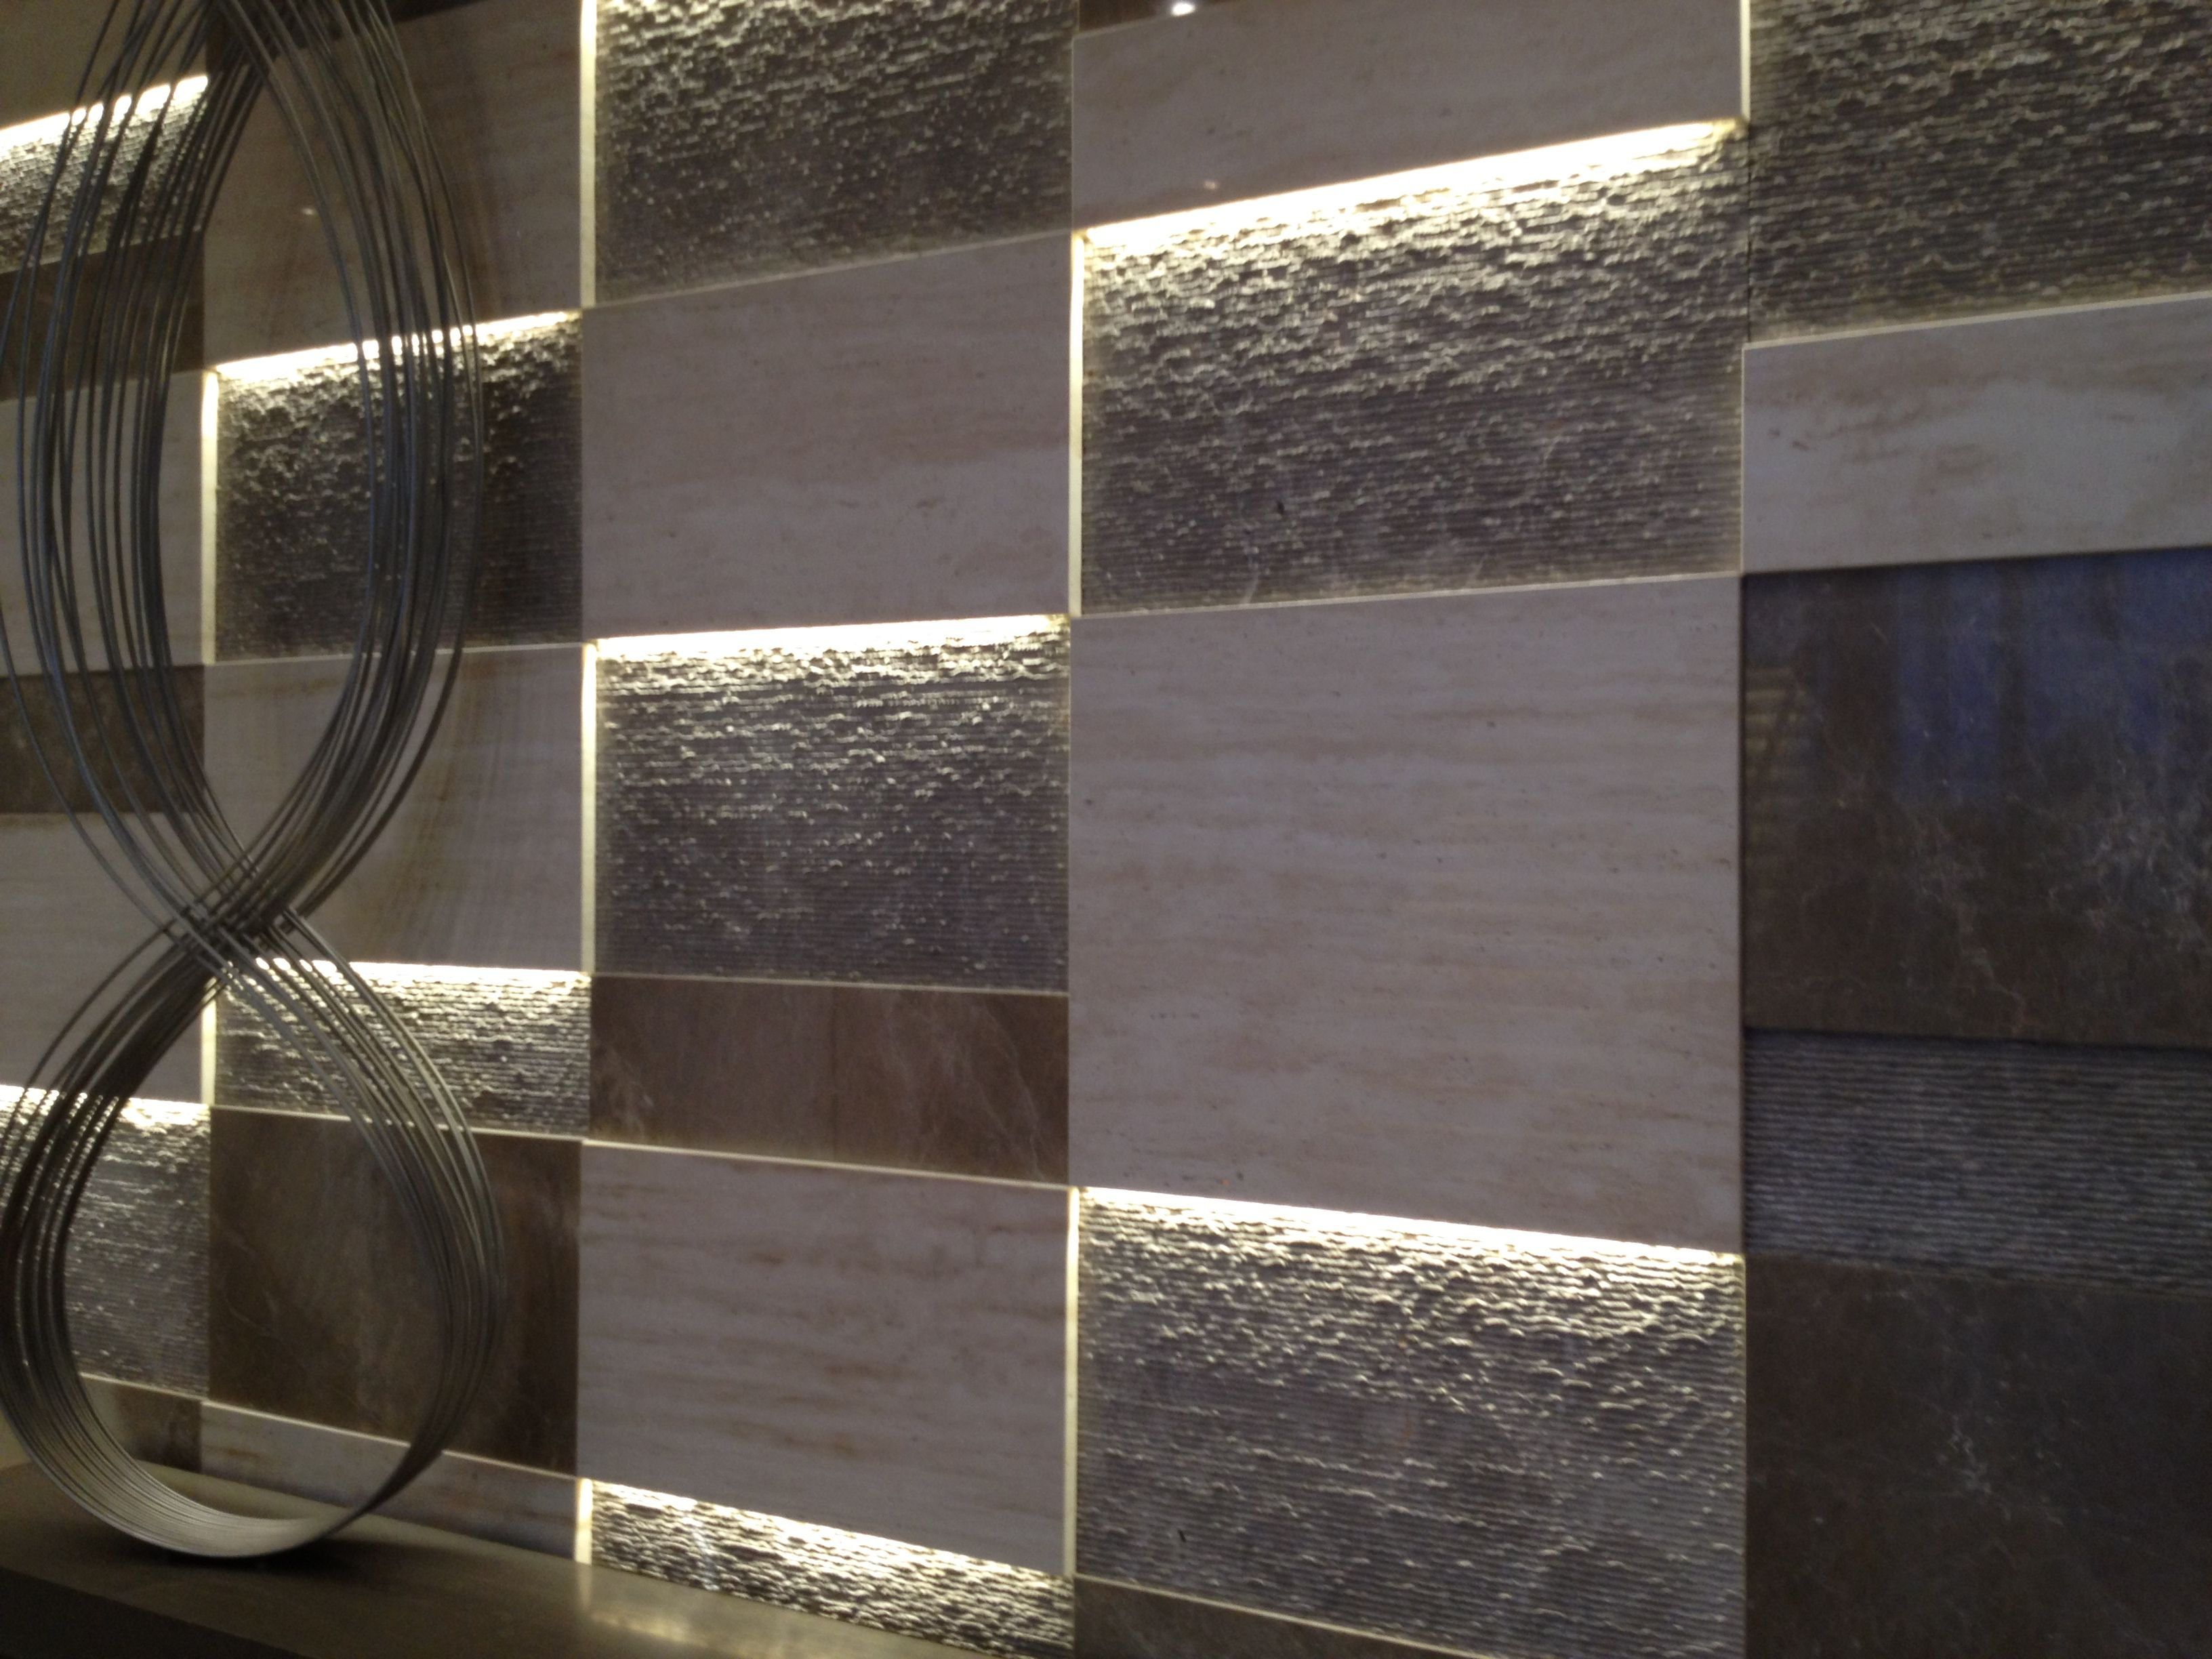 25 Creative 3D Wall Tile Designs To Help You Get Some ...  |Interior Textured Wall Tile